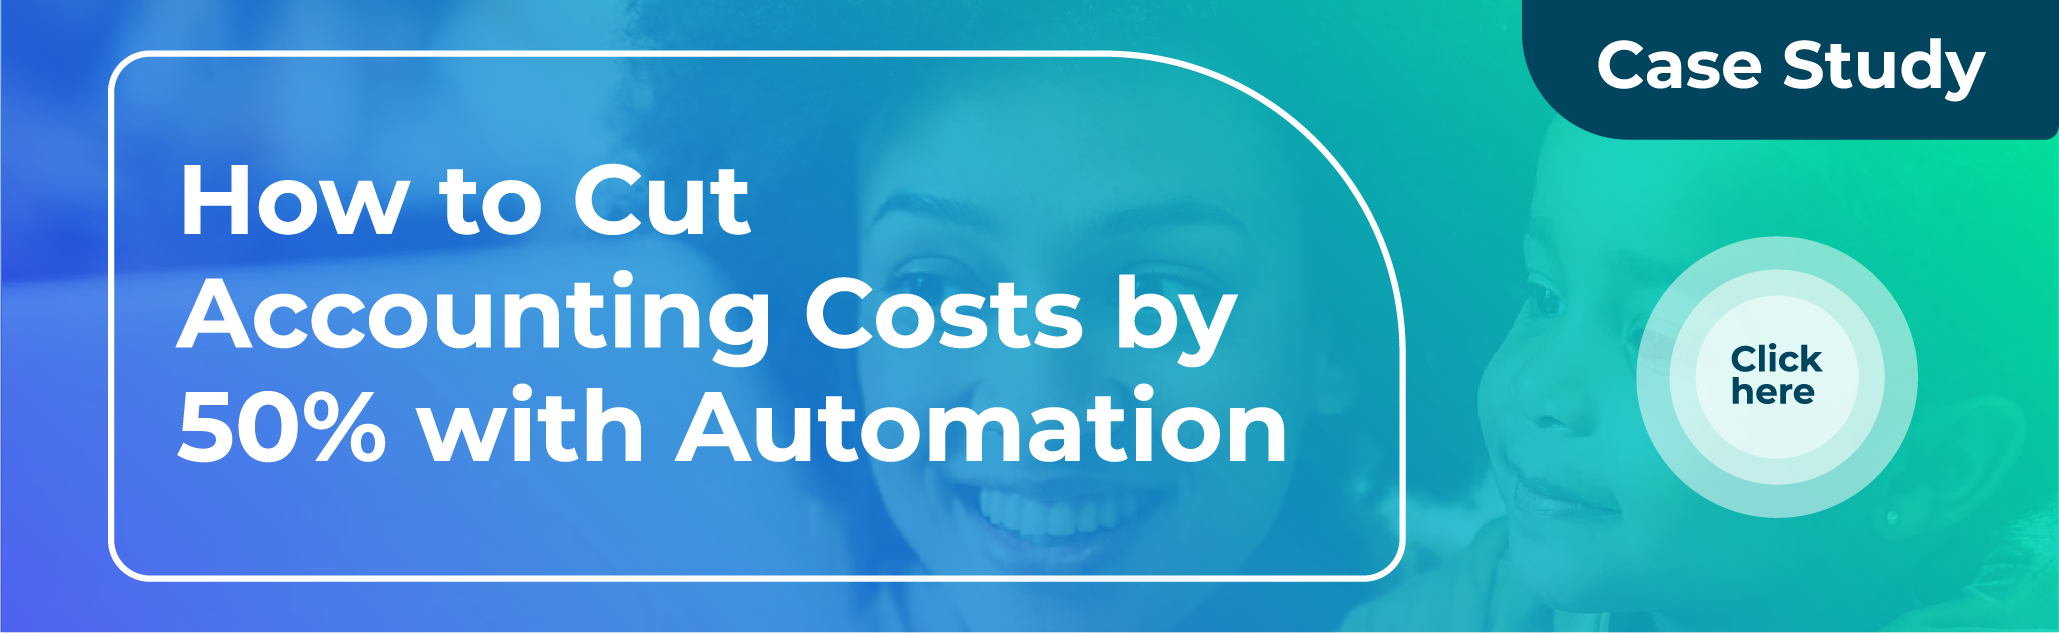 Case Study How to cut accounting costs by 50% with automation | Botkeeper